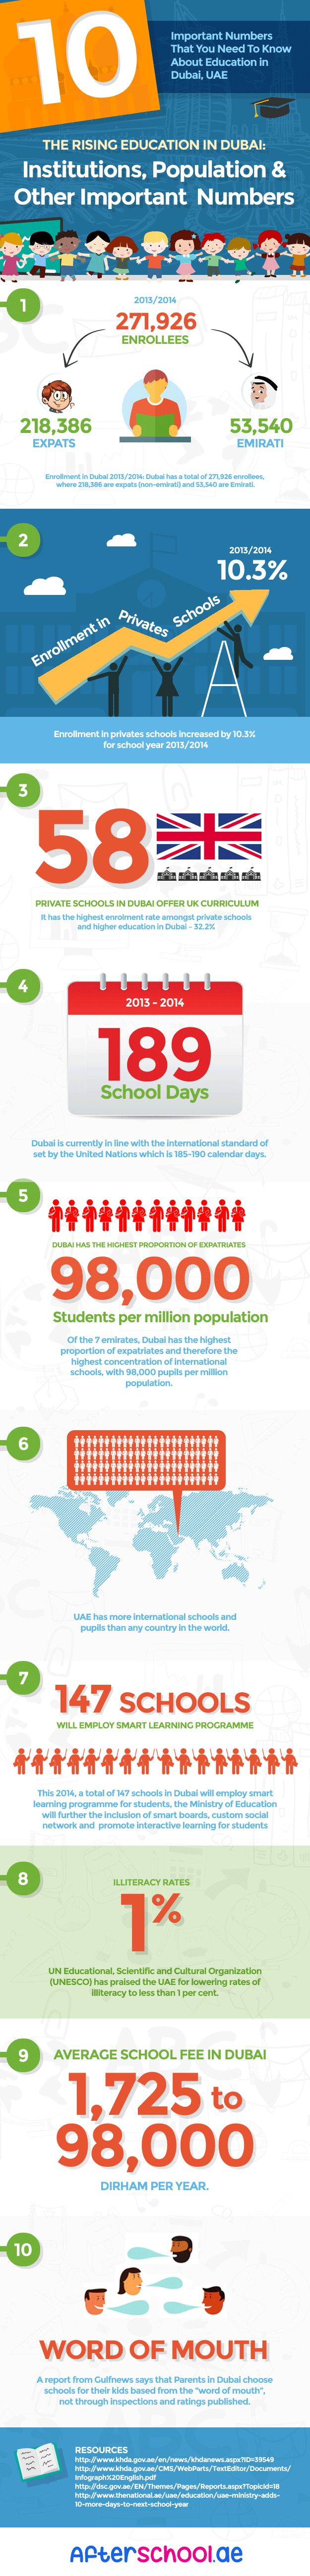 10 Important Numbers That You Need to Know About Education in Dubai #infographic #Education #Dubai